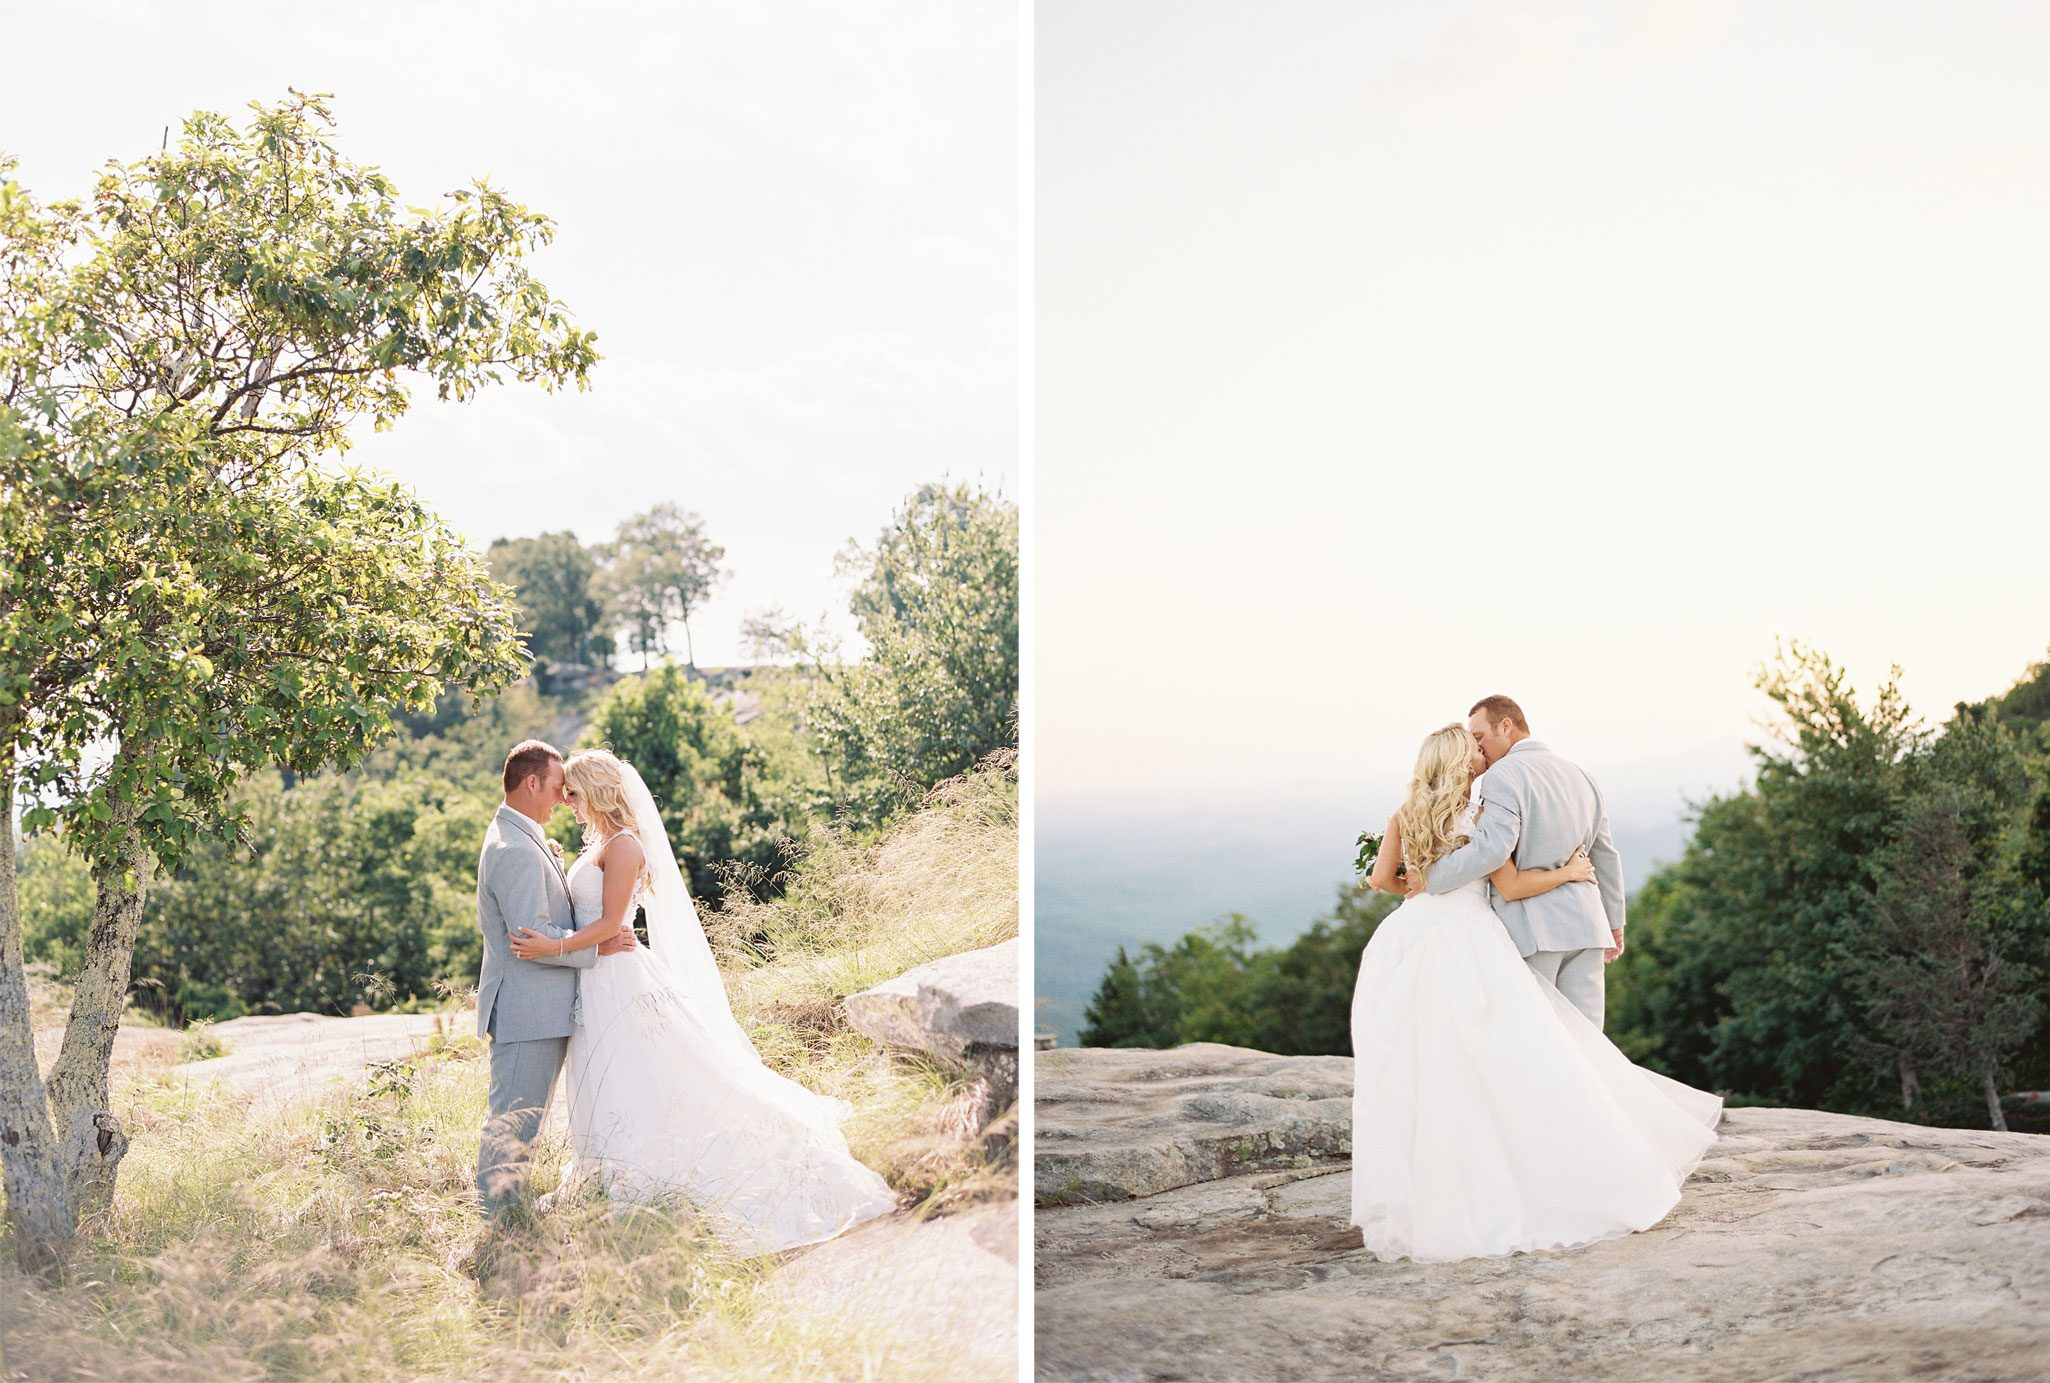 Bride & Groom | Blue Ridge Mountain Wedding in South Carolina